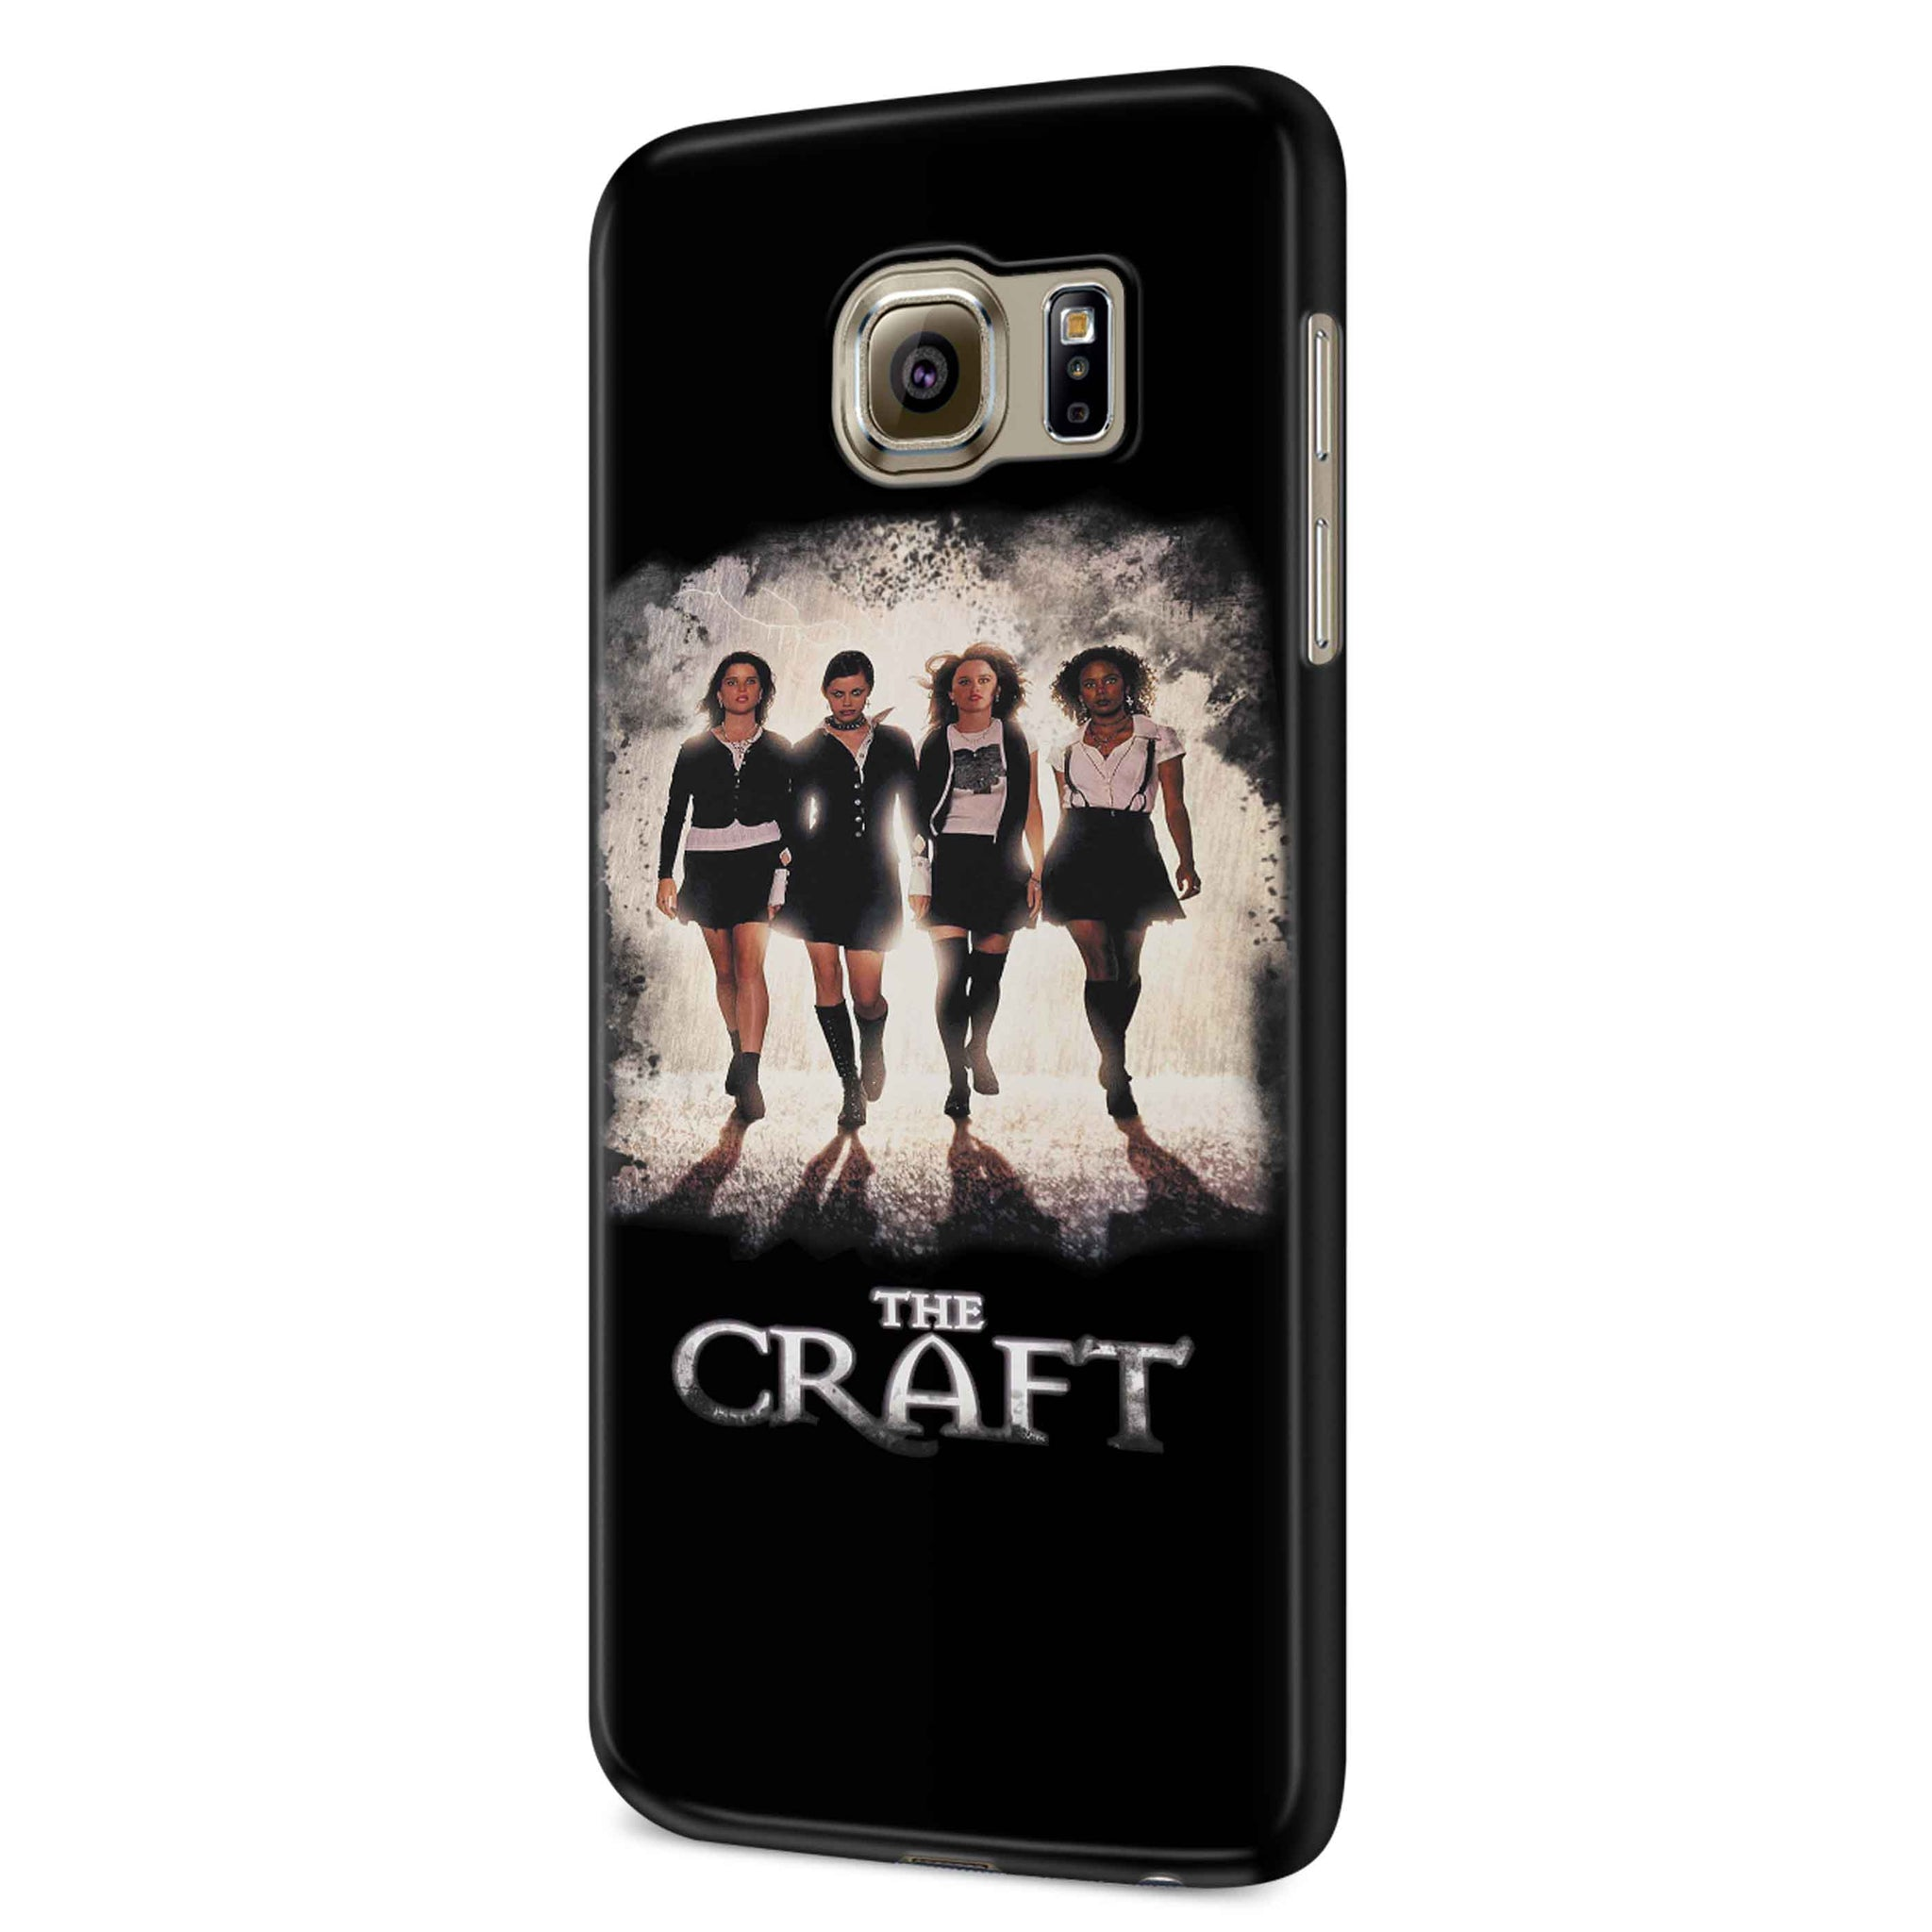 The Craft Samsung Galaxy S6 S6 Edge Plus/ S7 S7 Edge / S8 S8 Plus / S9 S9 plus 3D Case